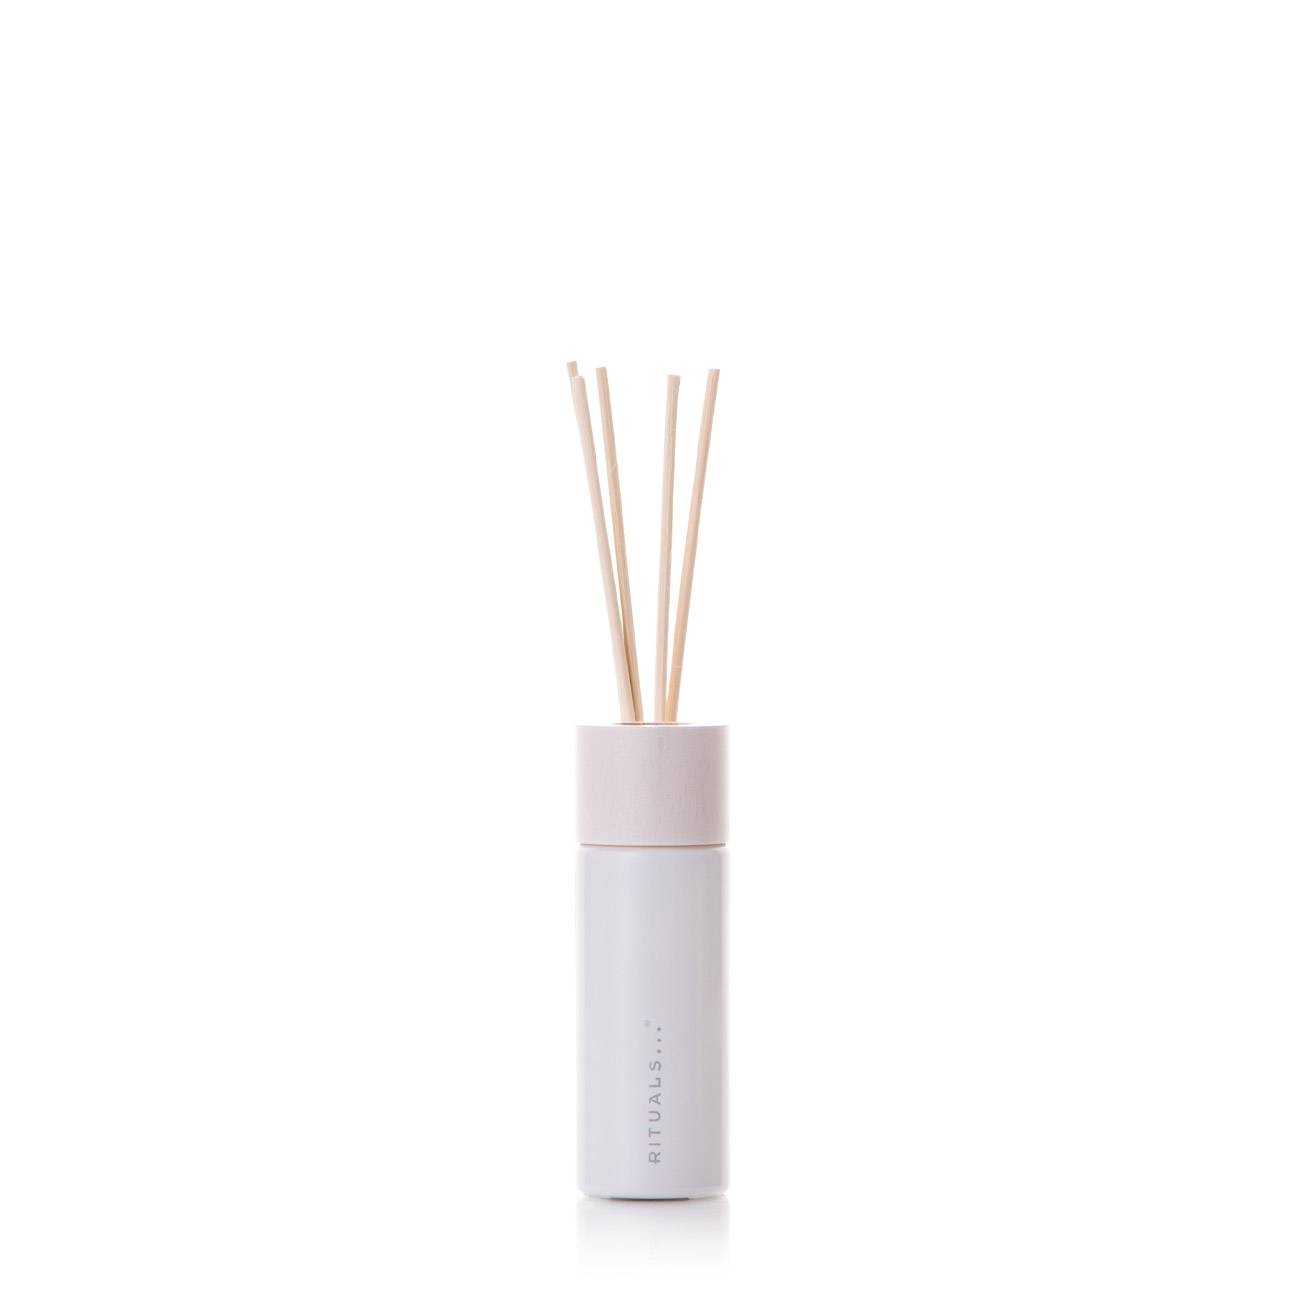 Sakura Mini Fragrance Sticks Rituals imagine 2021 bestvalue.eu